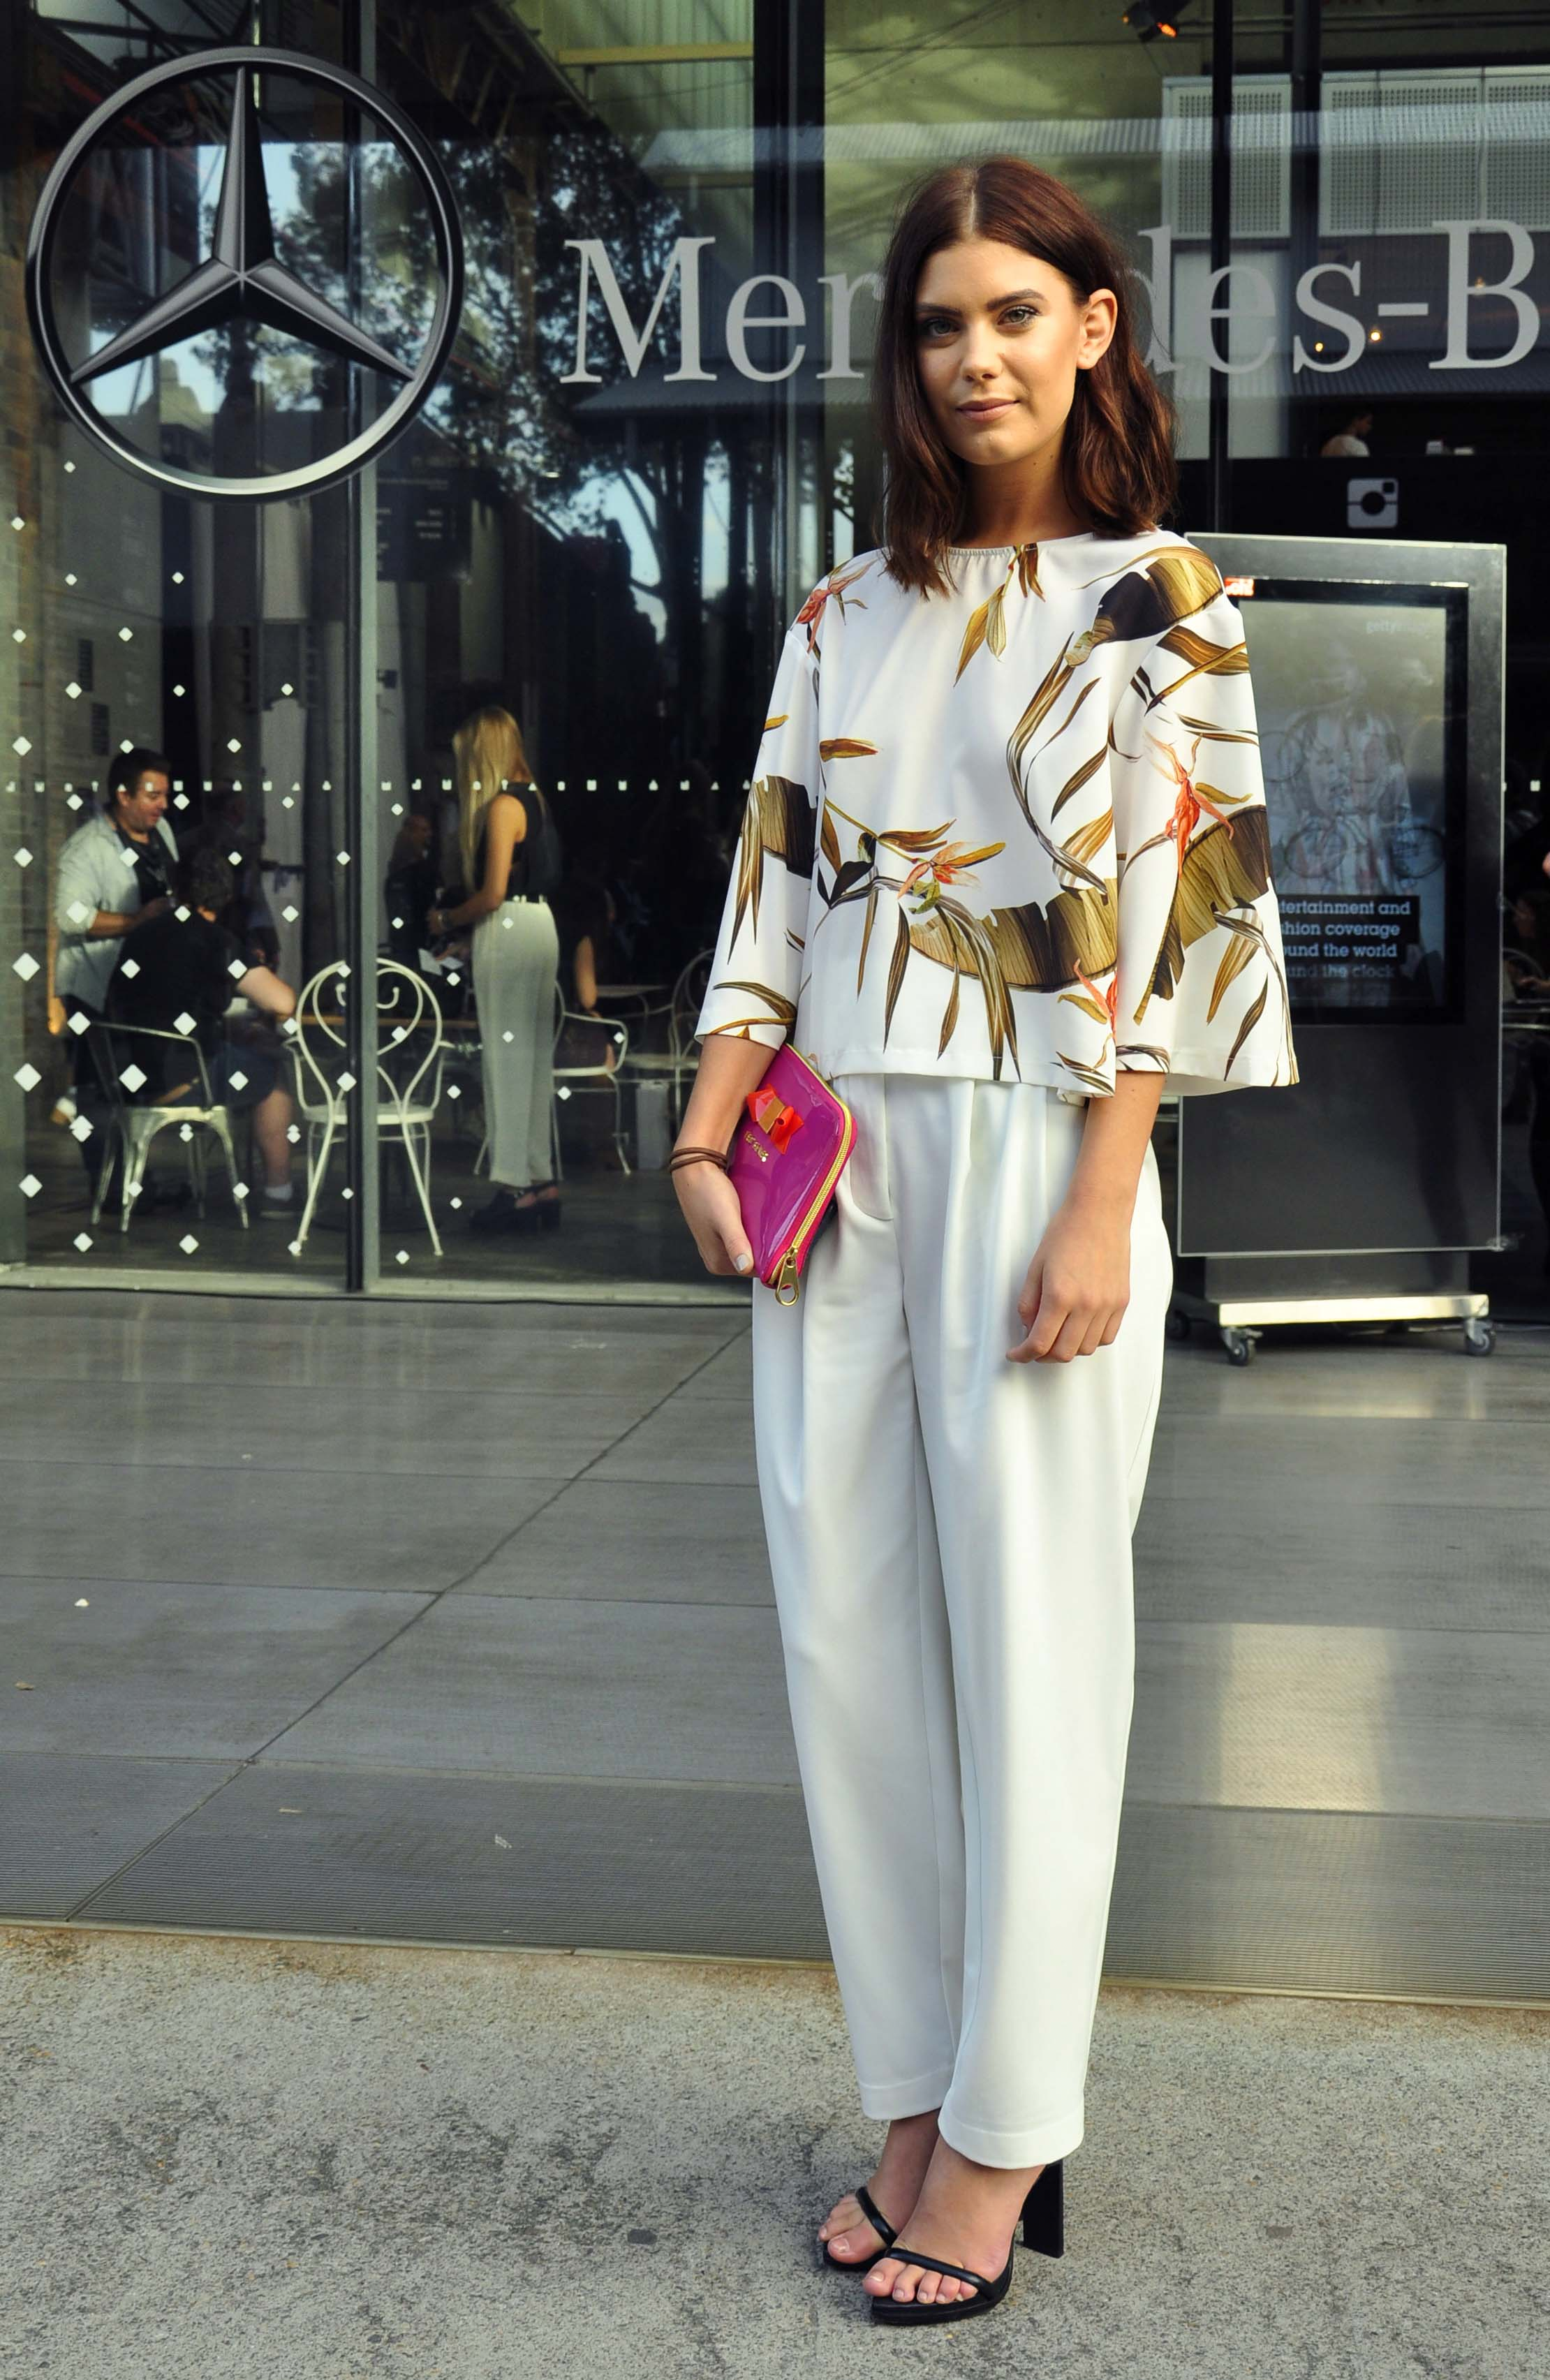 8 Things I Learnt At MBFW